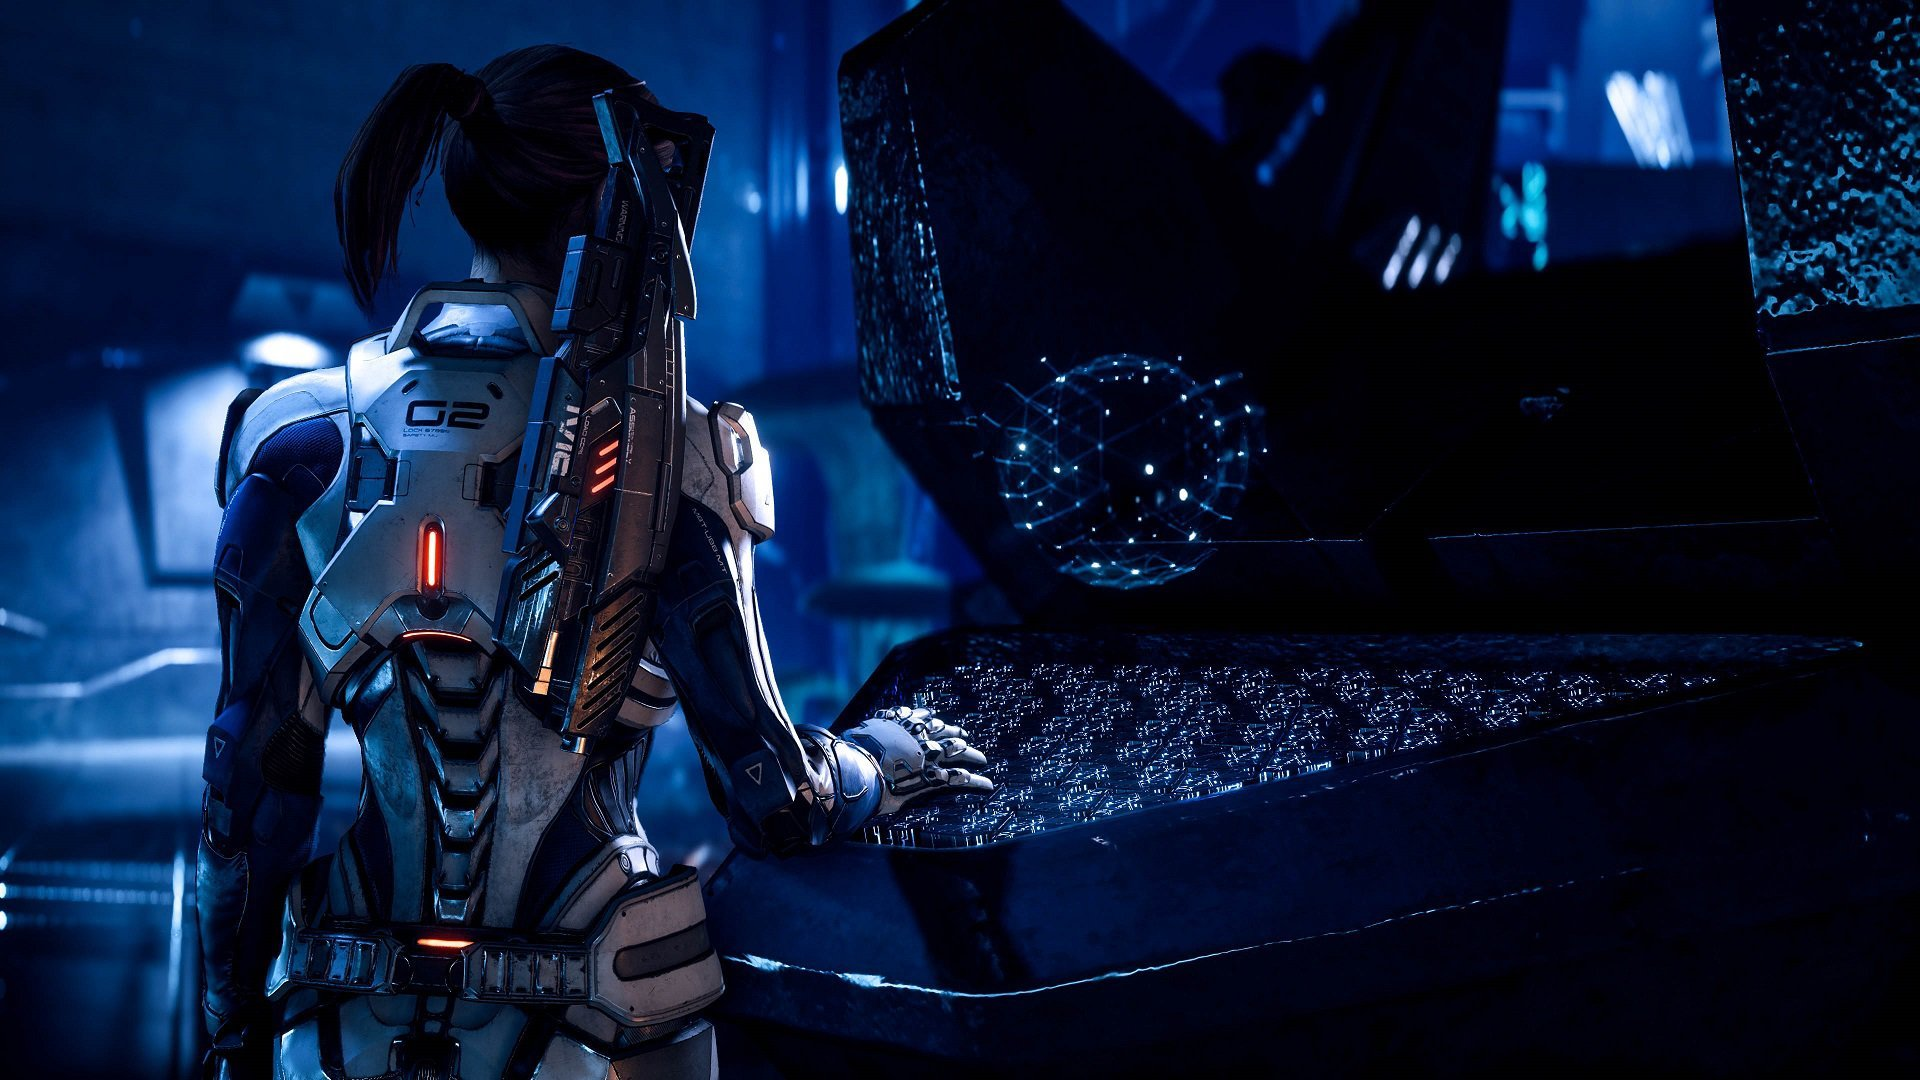 Download 1080p Mass Effect Mass Effect Andromeda Sara Ryder